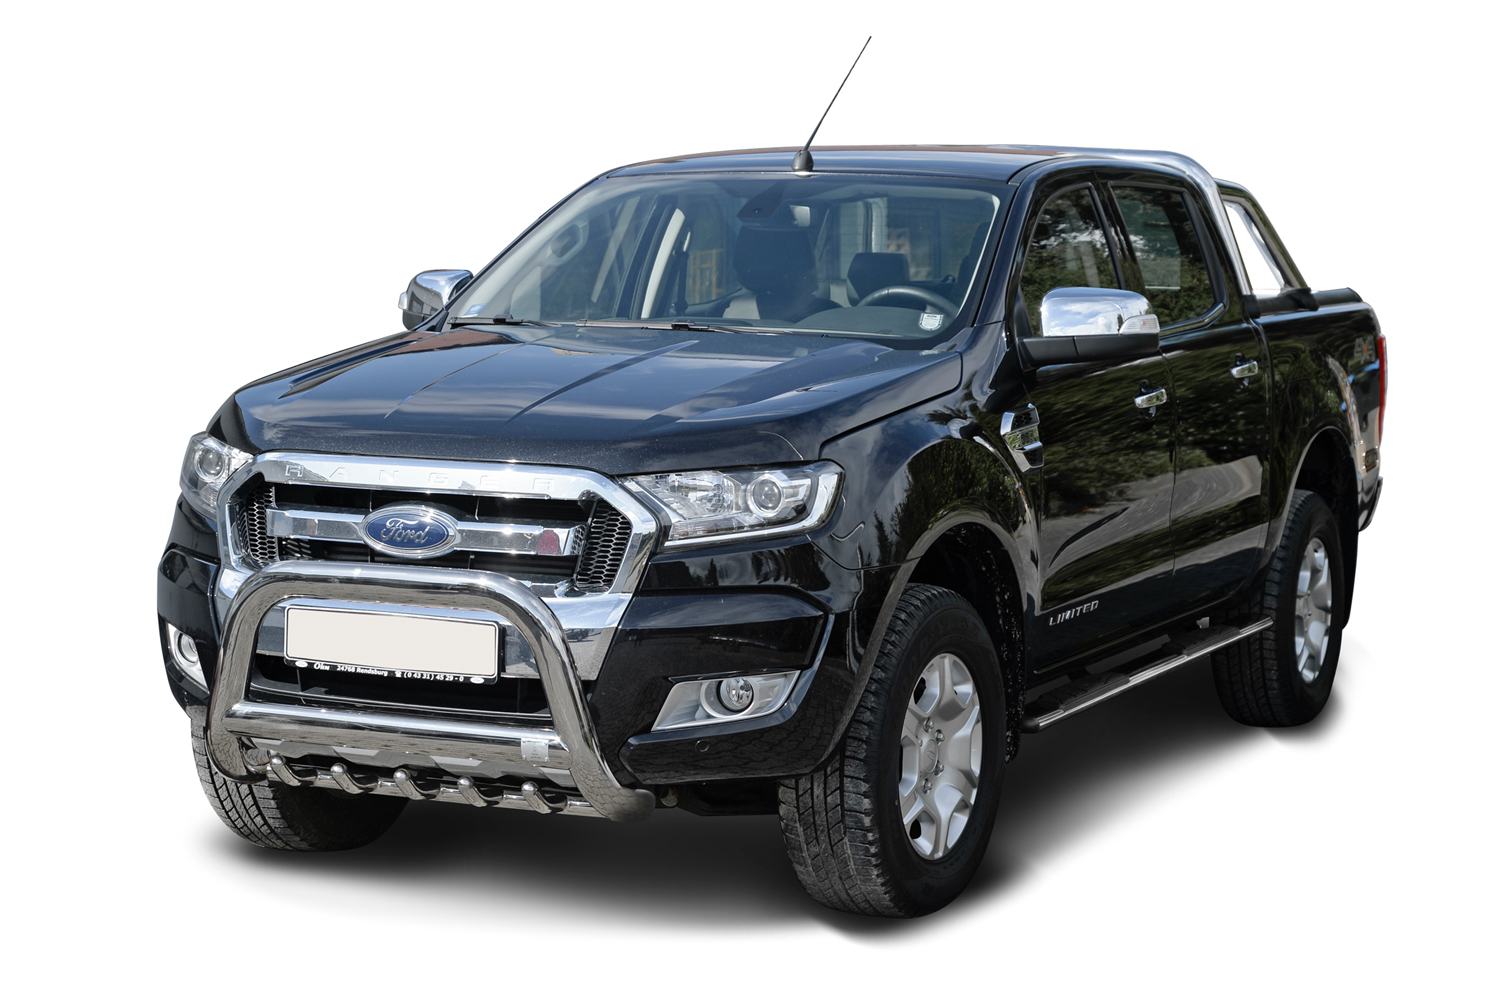 frontb gel frontbar bullbar ford ranger 2012. Black Bedroom Furniture Sets. Home Design Ideas